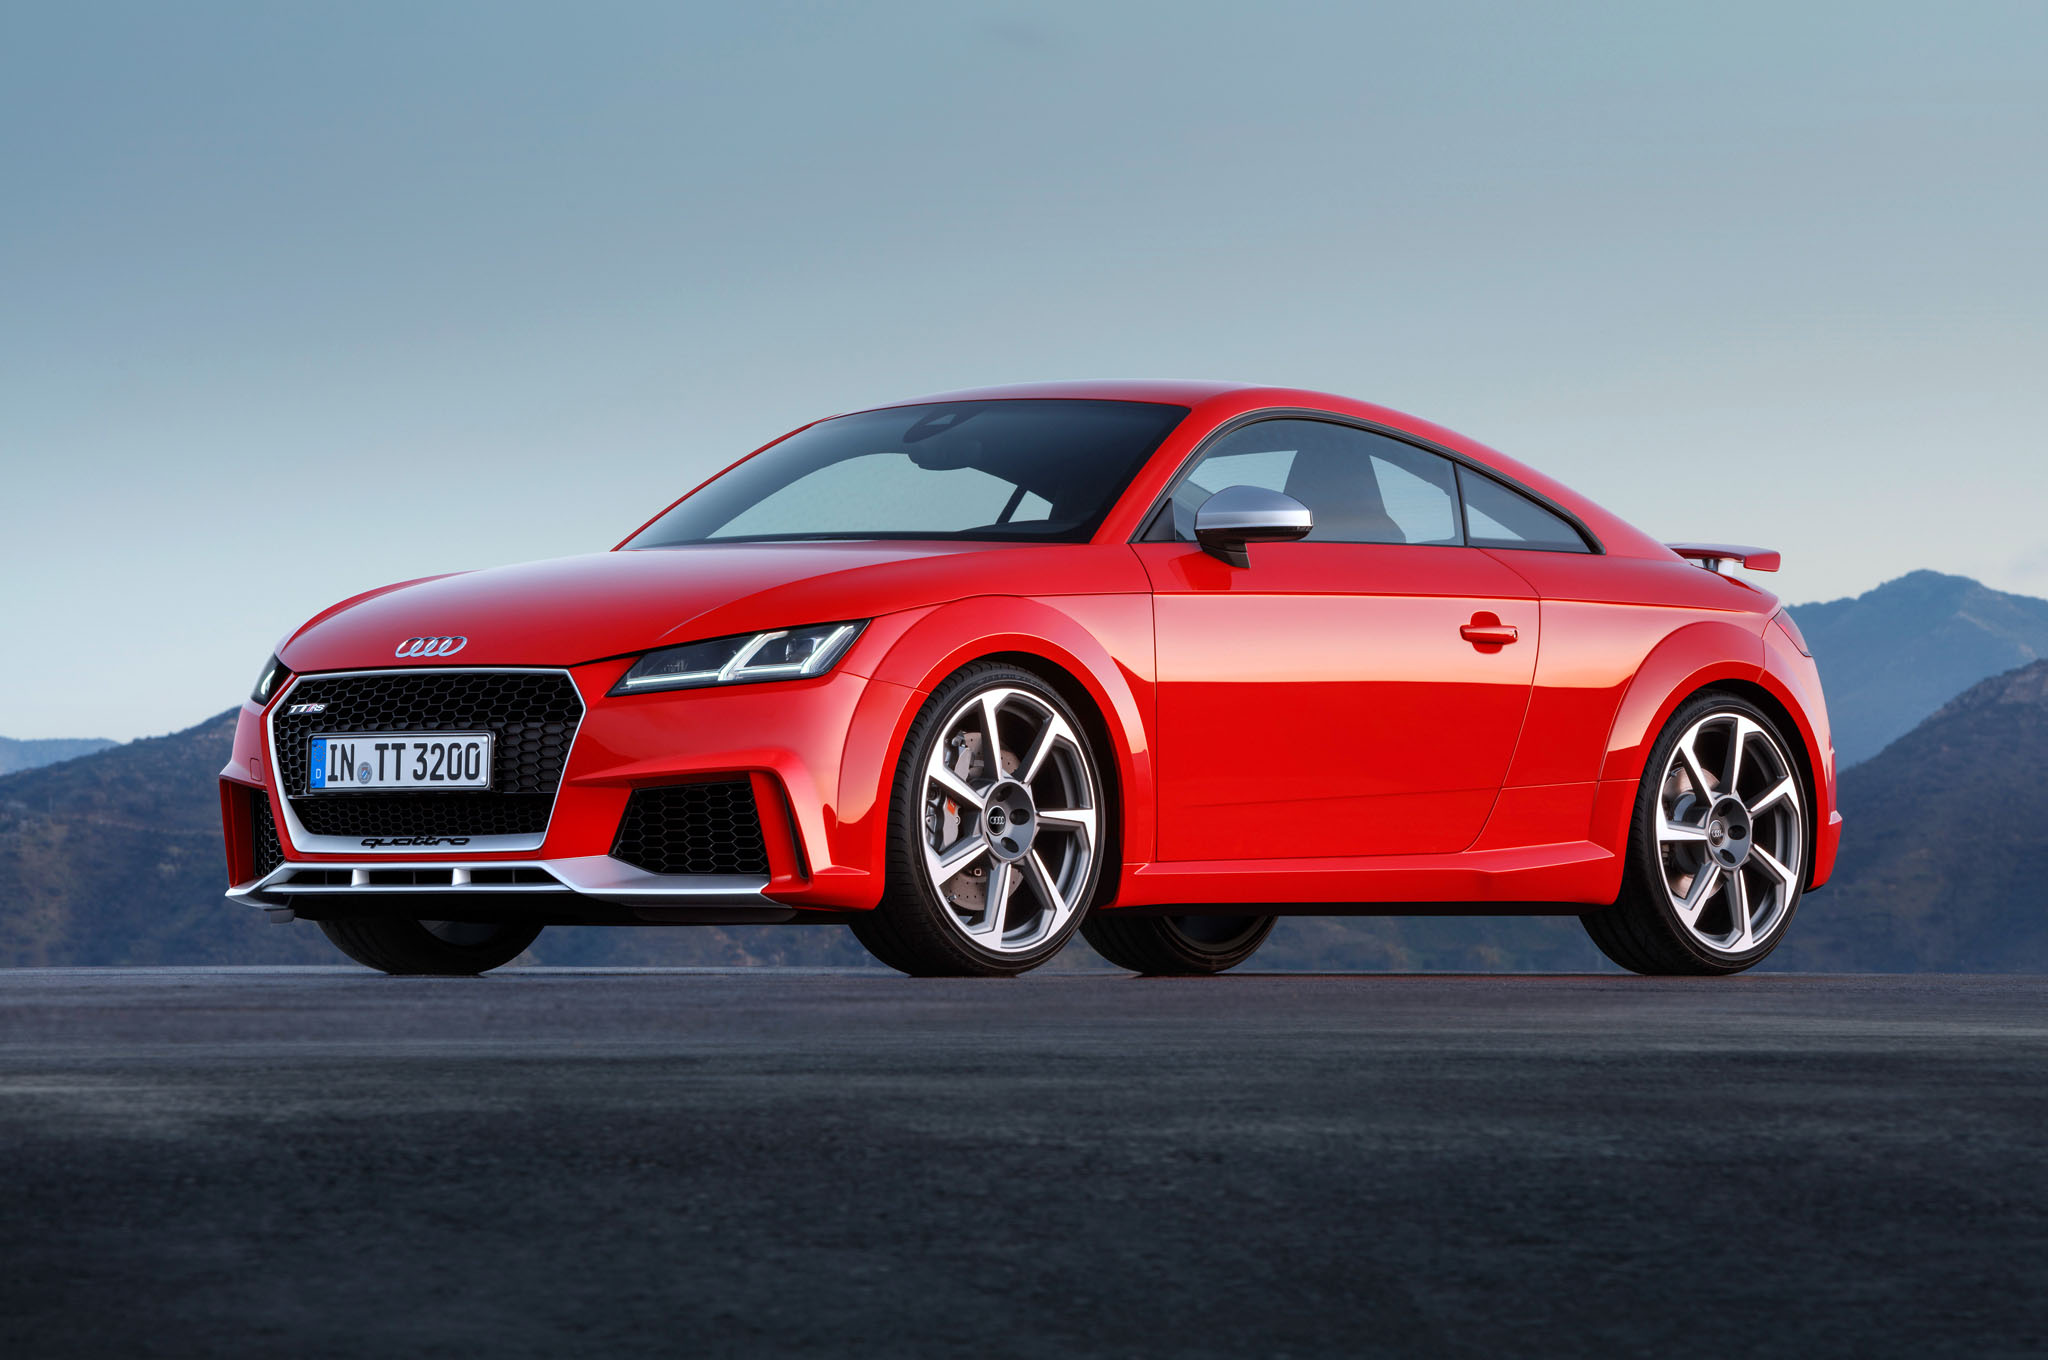 2017 Audi TT RS Coupe Background Wallpaper HD Car Wallpapers 2048x1360